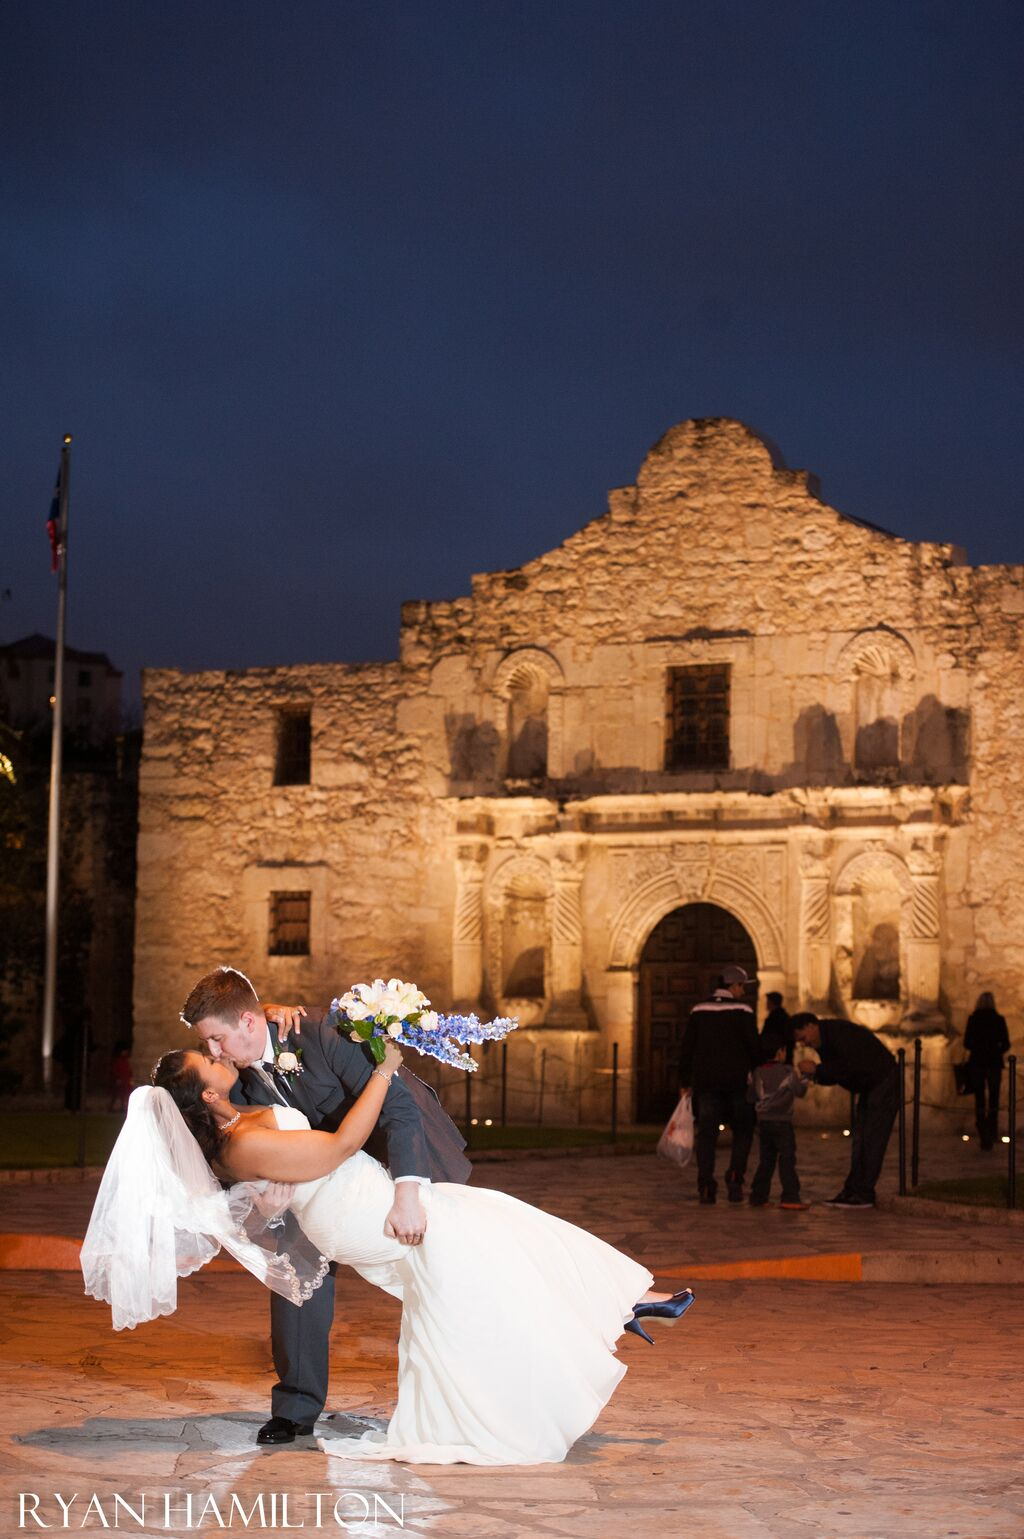 Texas Elopements: Uniting Traditional Values with Modern Convenience